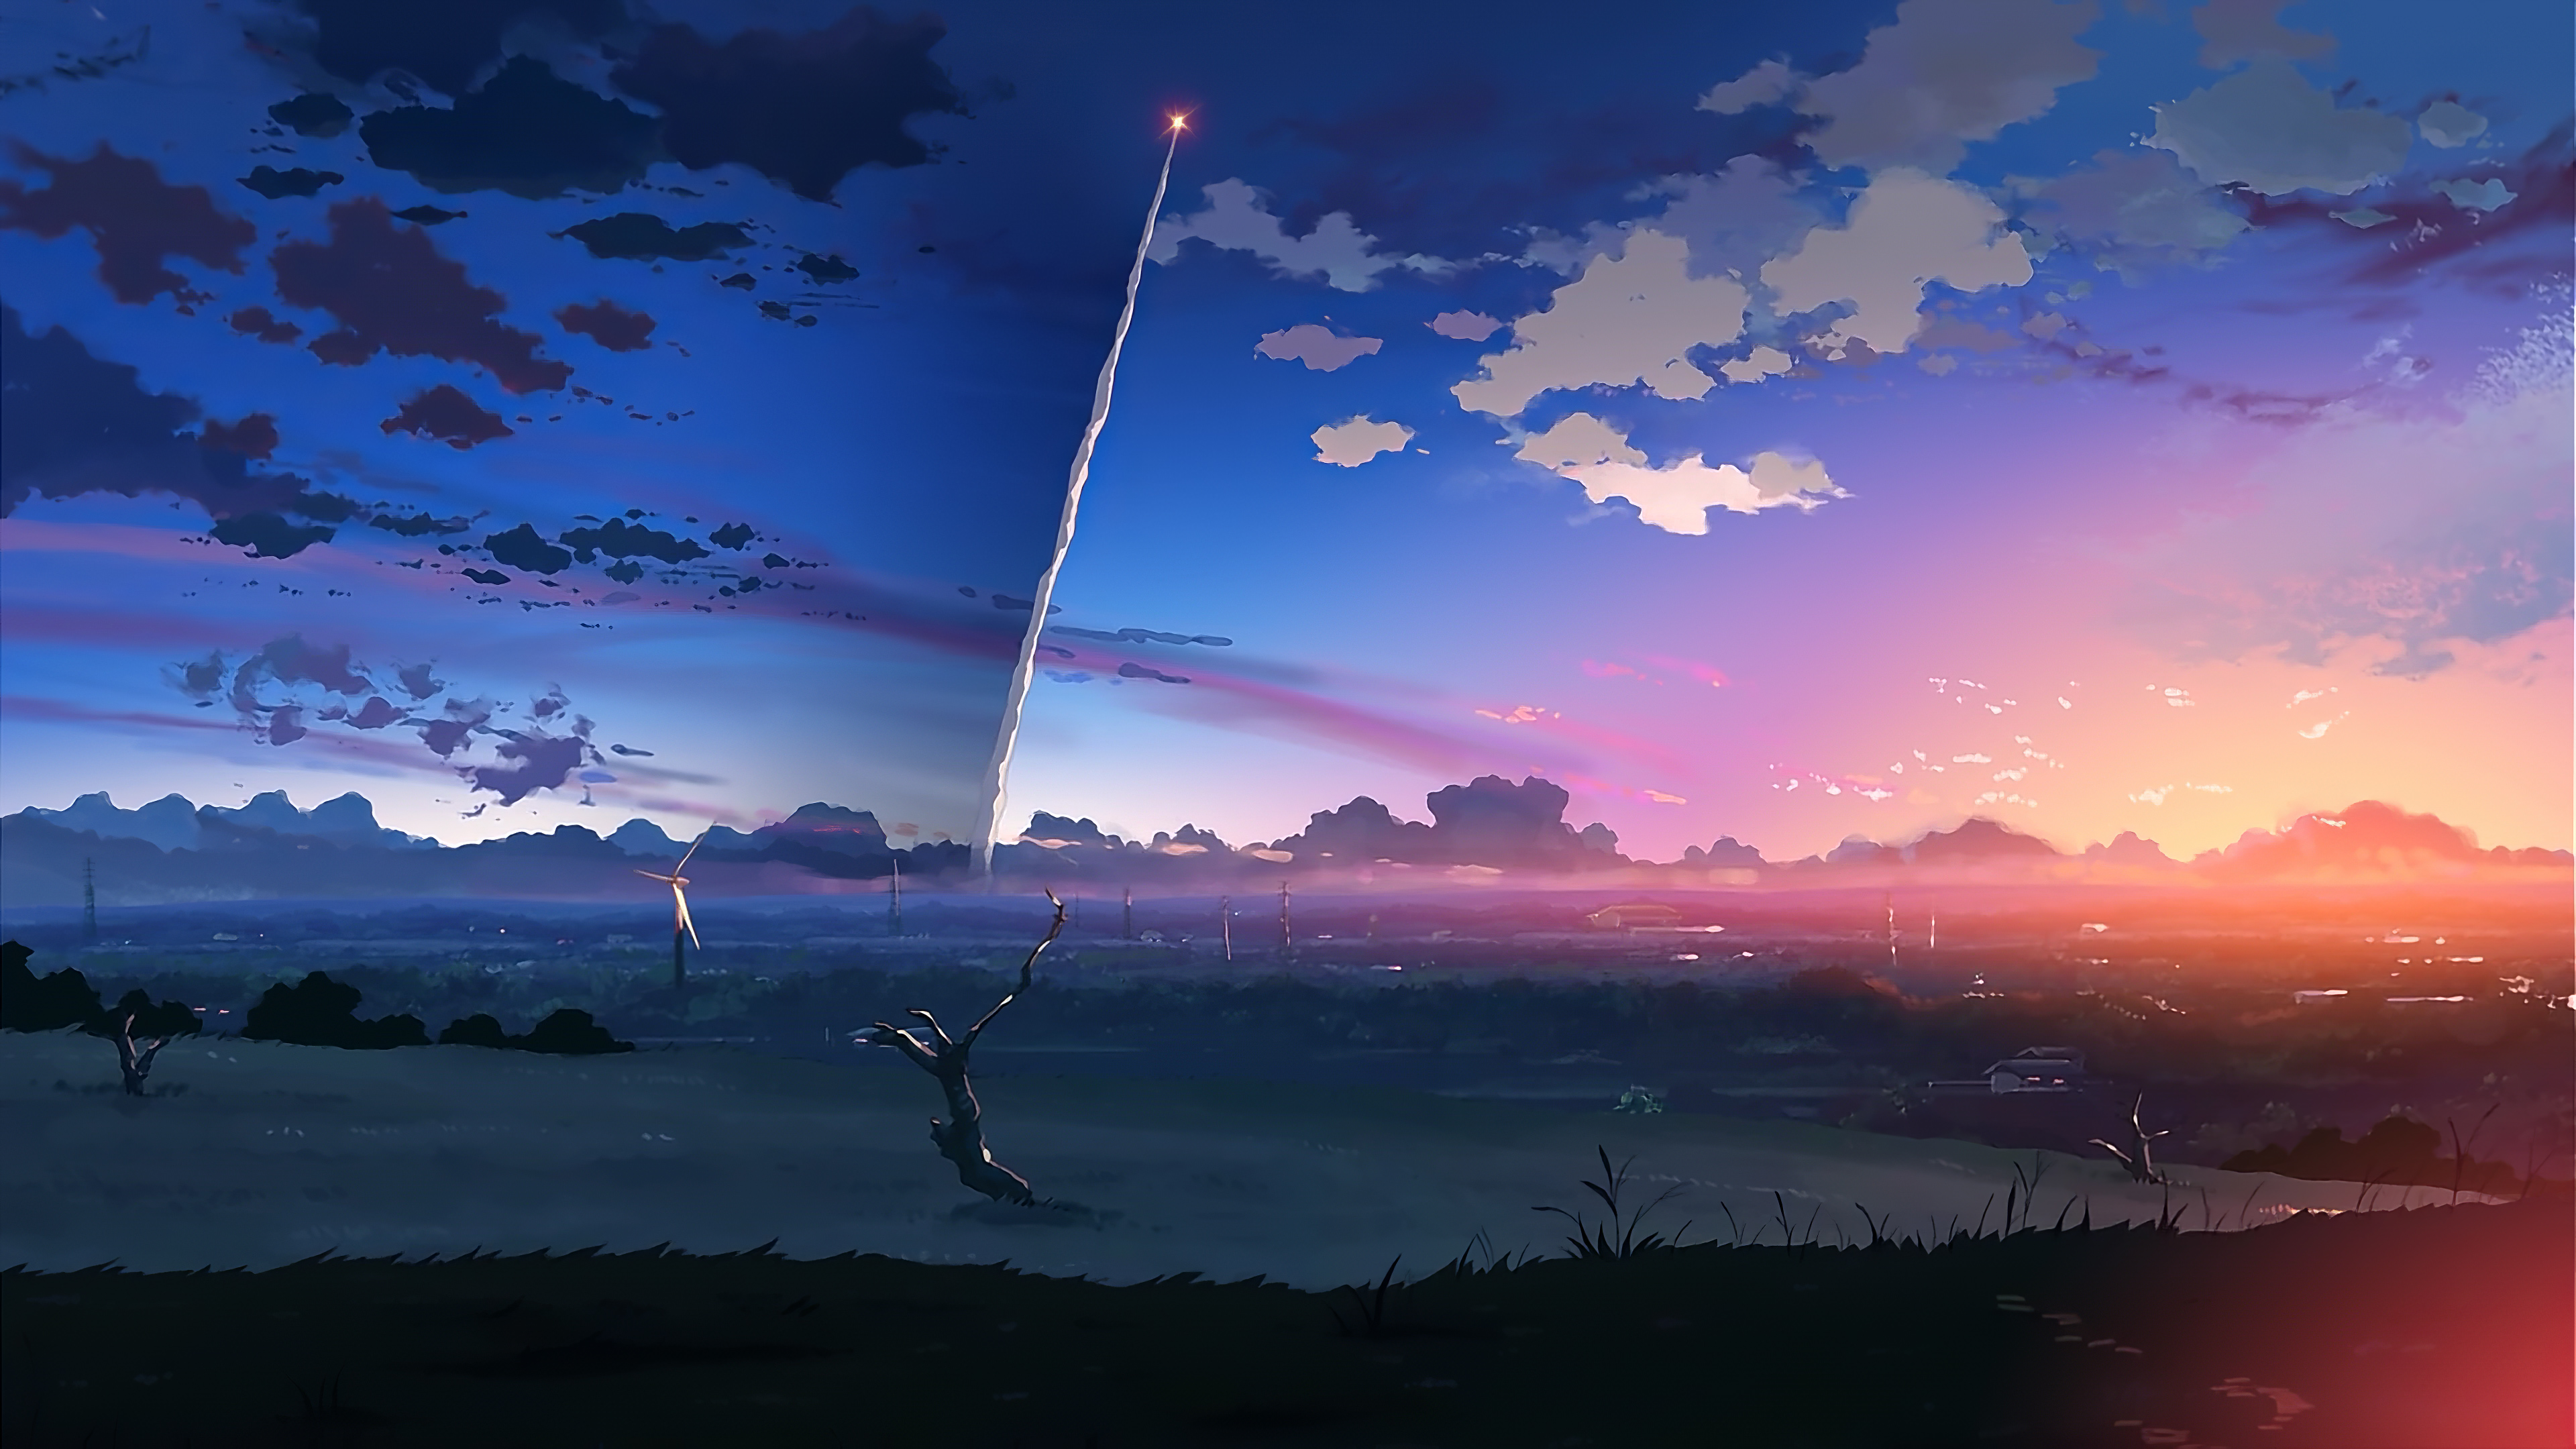 5 Centimeters Per Second Anime Tv Series Hd Anime 4k Wallpapers